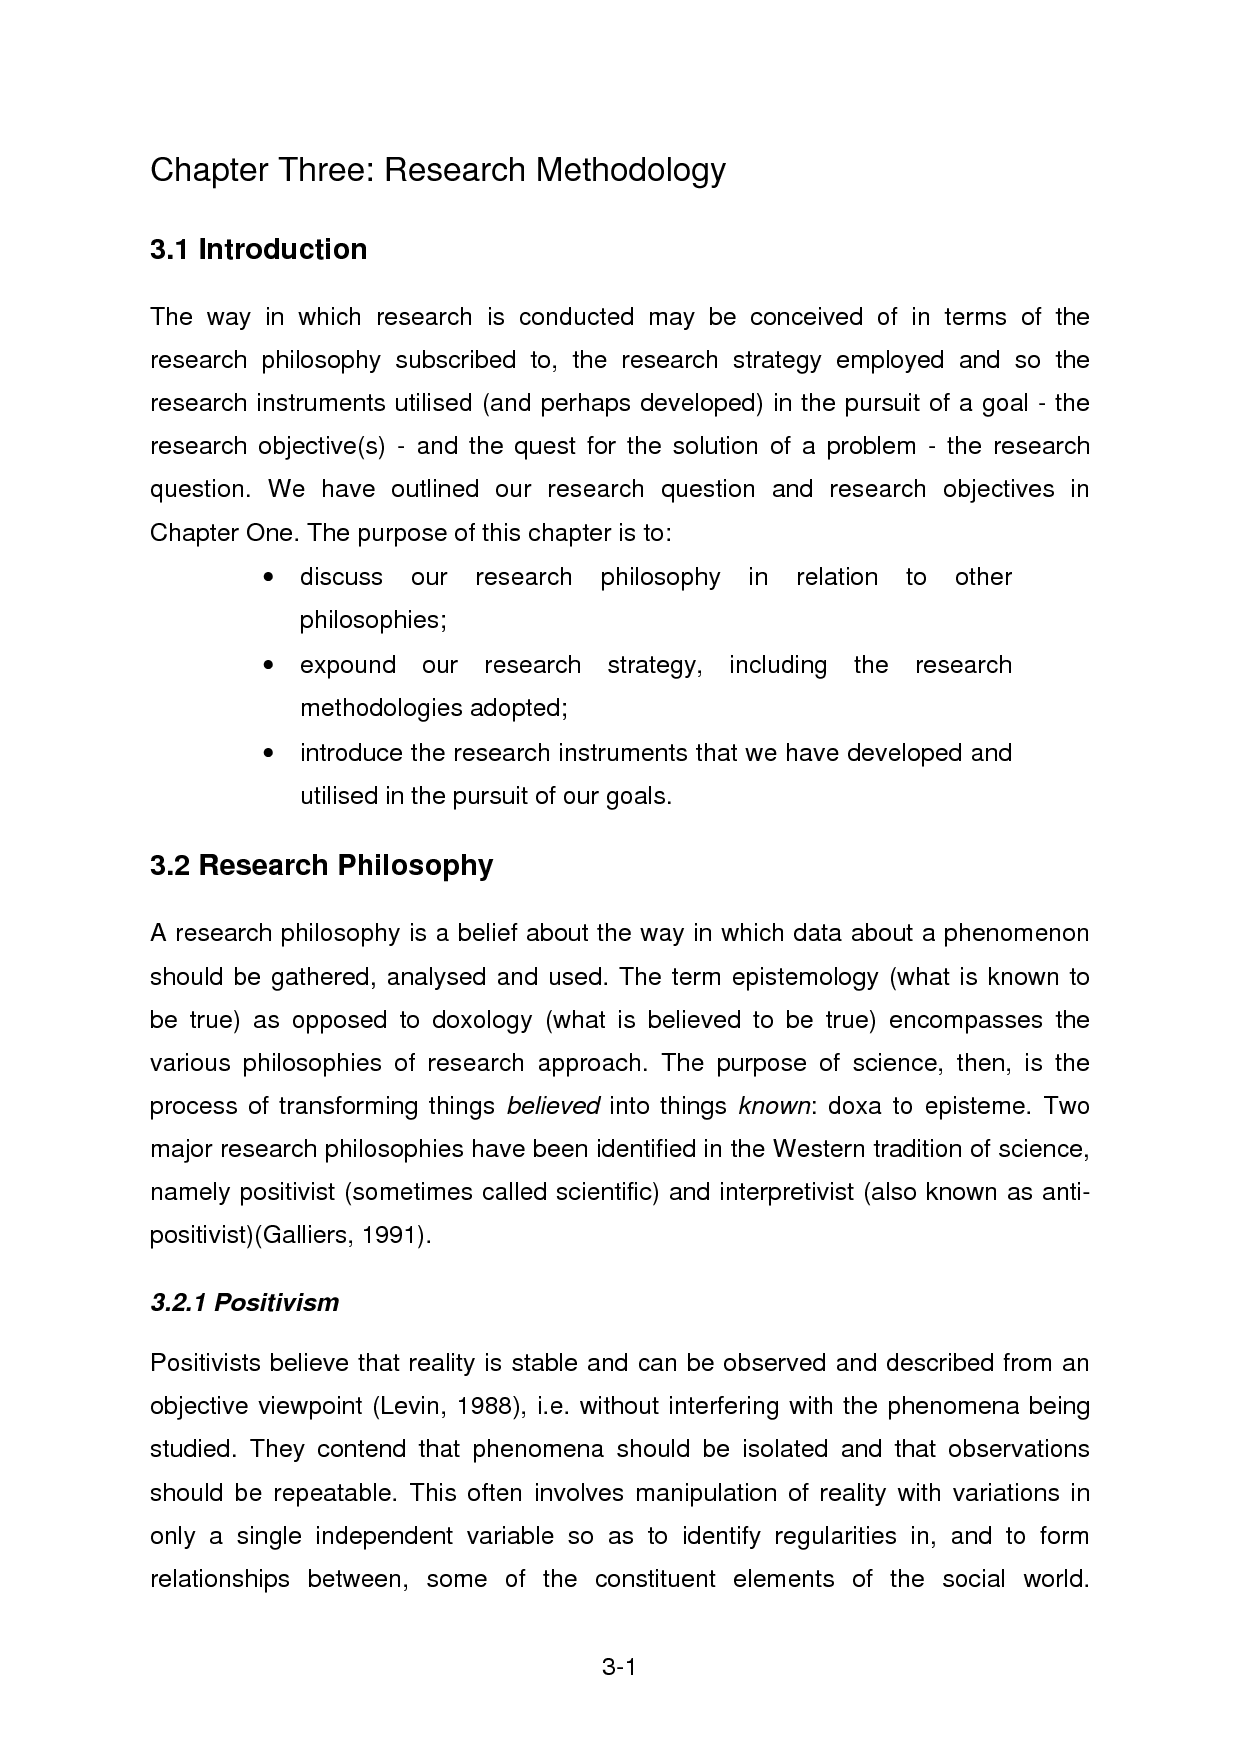 write a methodology Can u plz say me where to write methodology after acknowledgements or before bibliography plz plz i have to do my grade 10 projects.